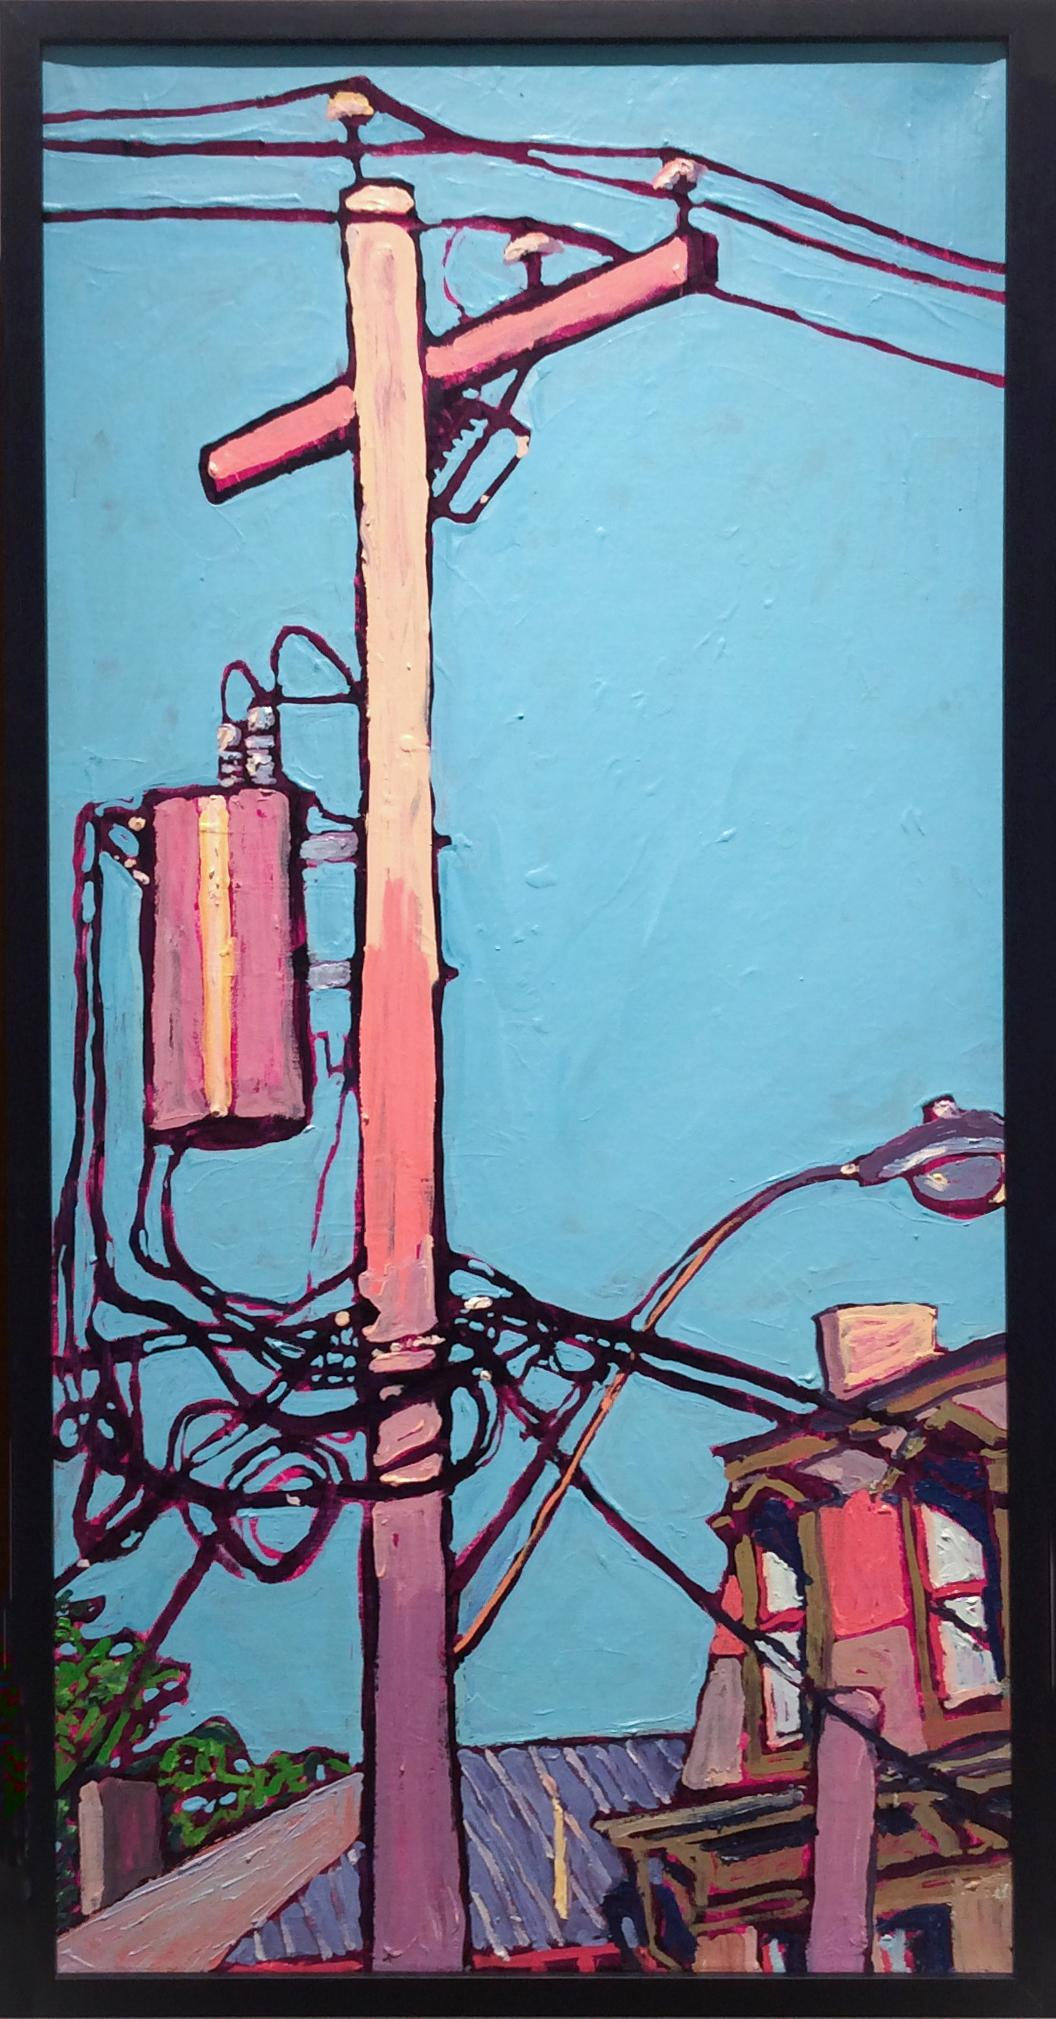 Transformers on Columbia: Fauvist Style Cityscape Painting with Blue Sky, Framed